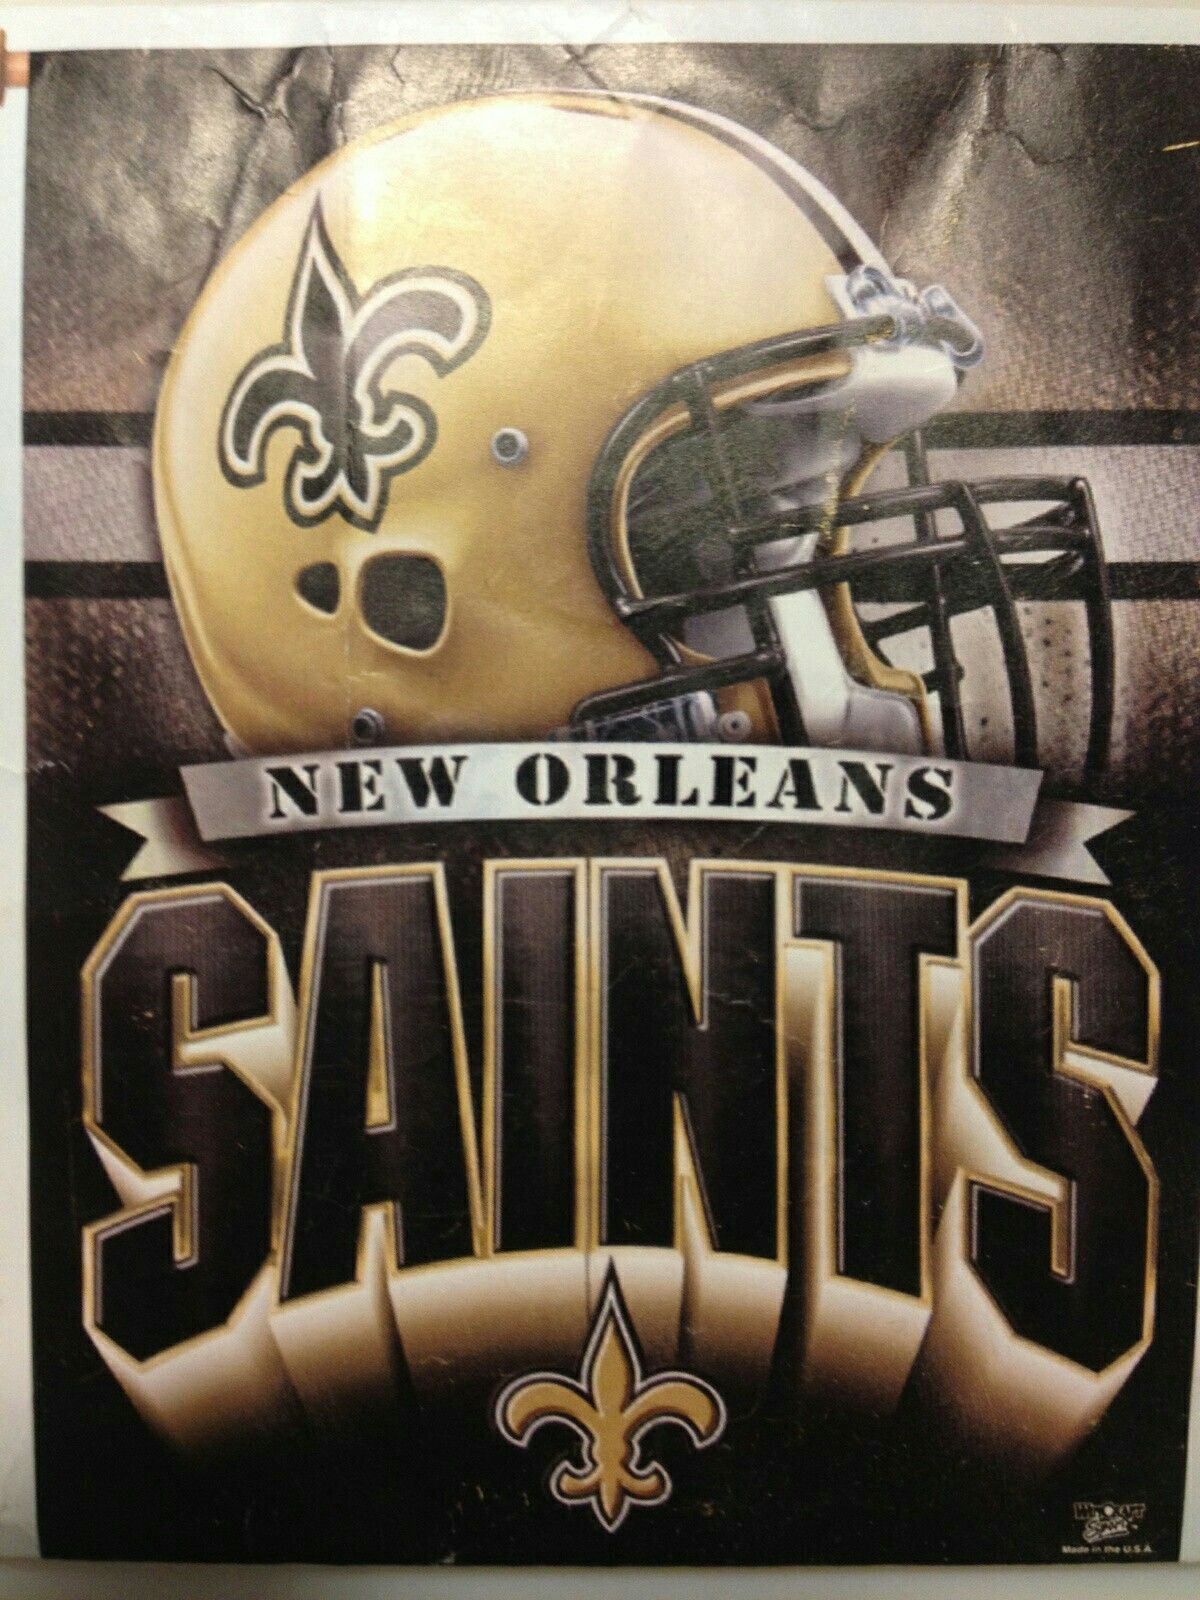 New orleans saints football image by mary miller on saints